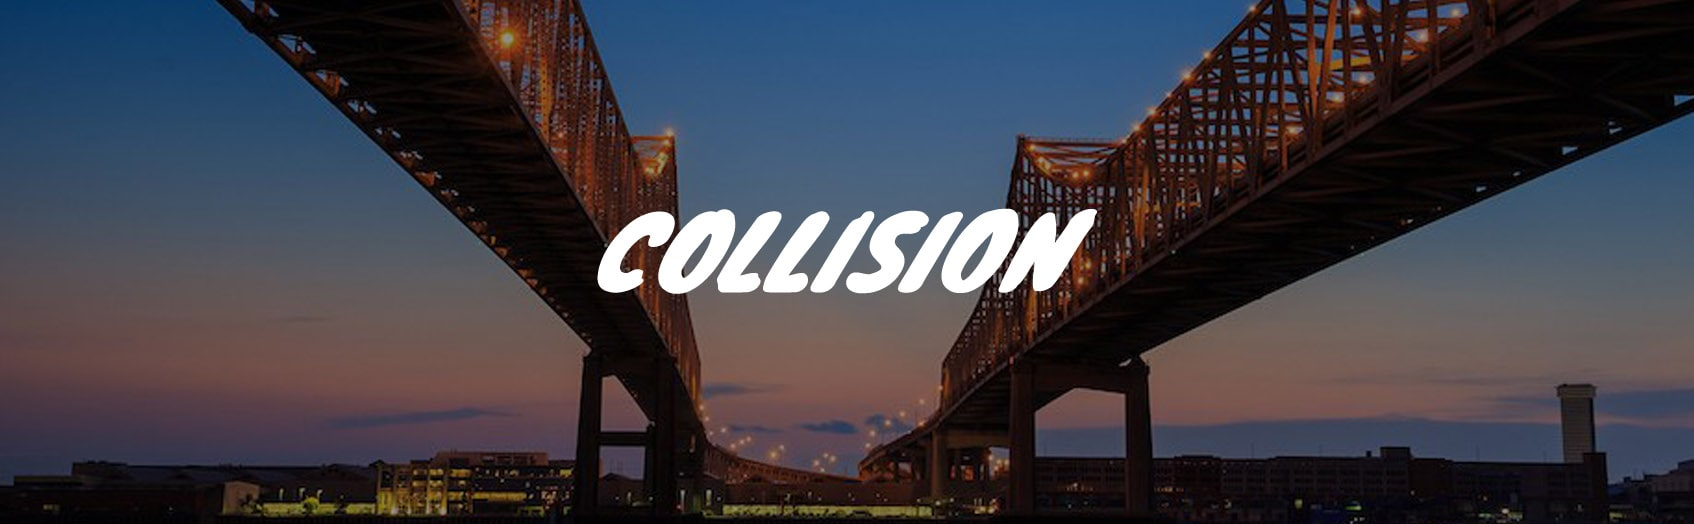 Collision in Top tech events 2017, Q2 - guide by Redwerk